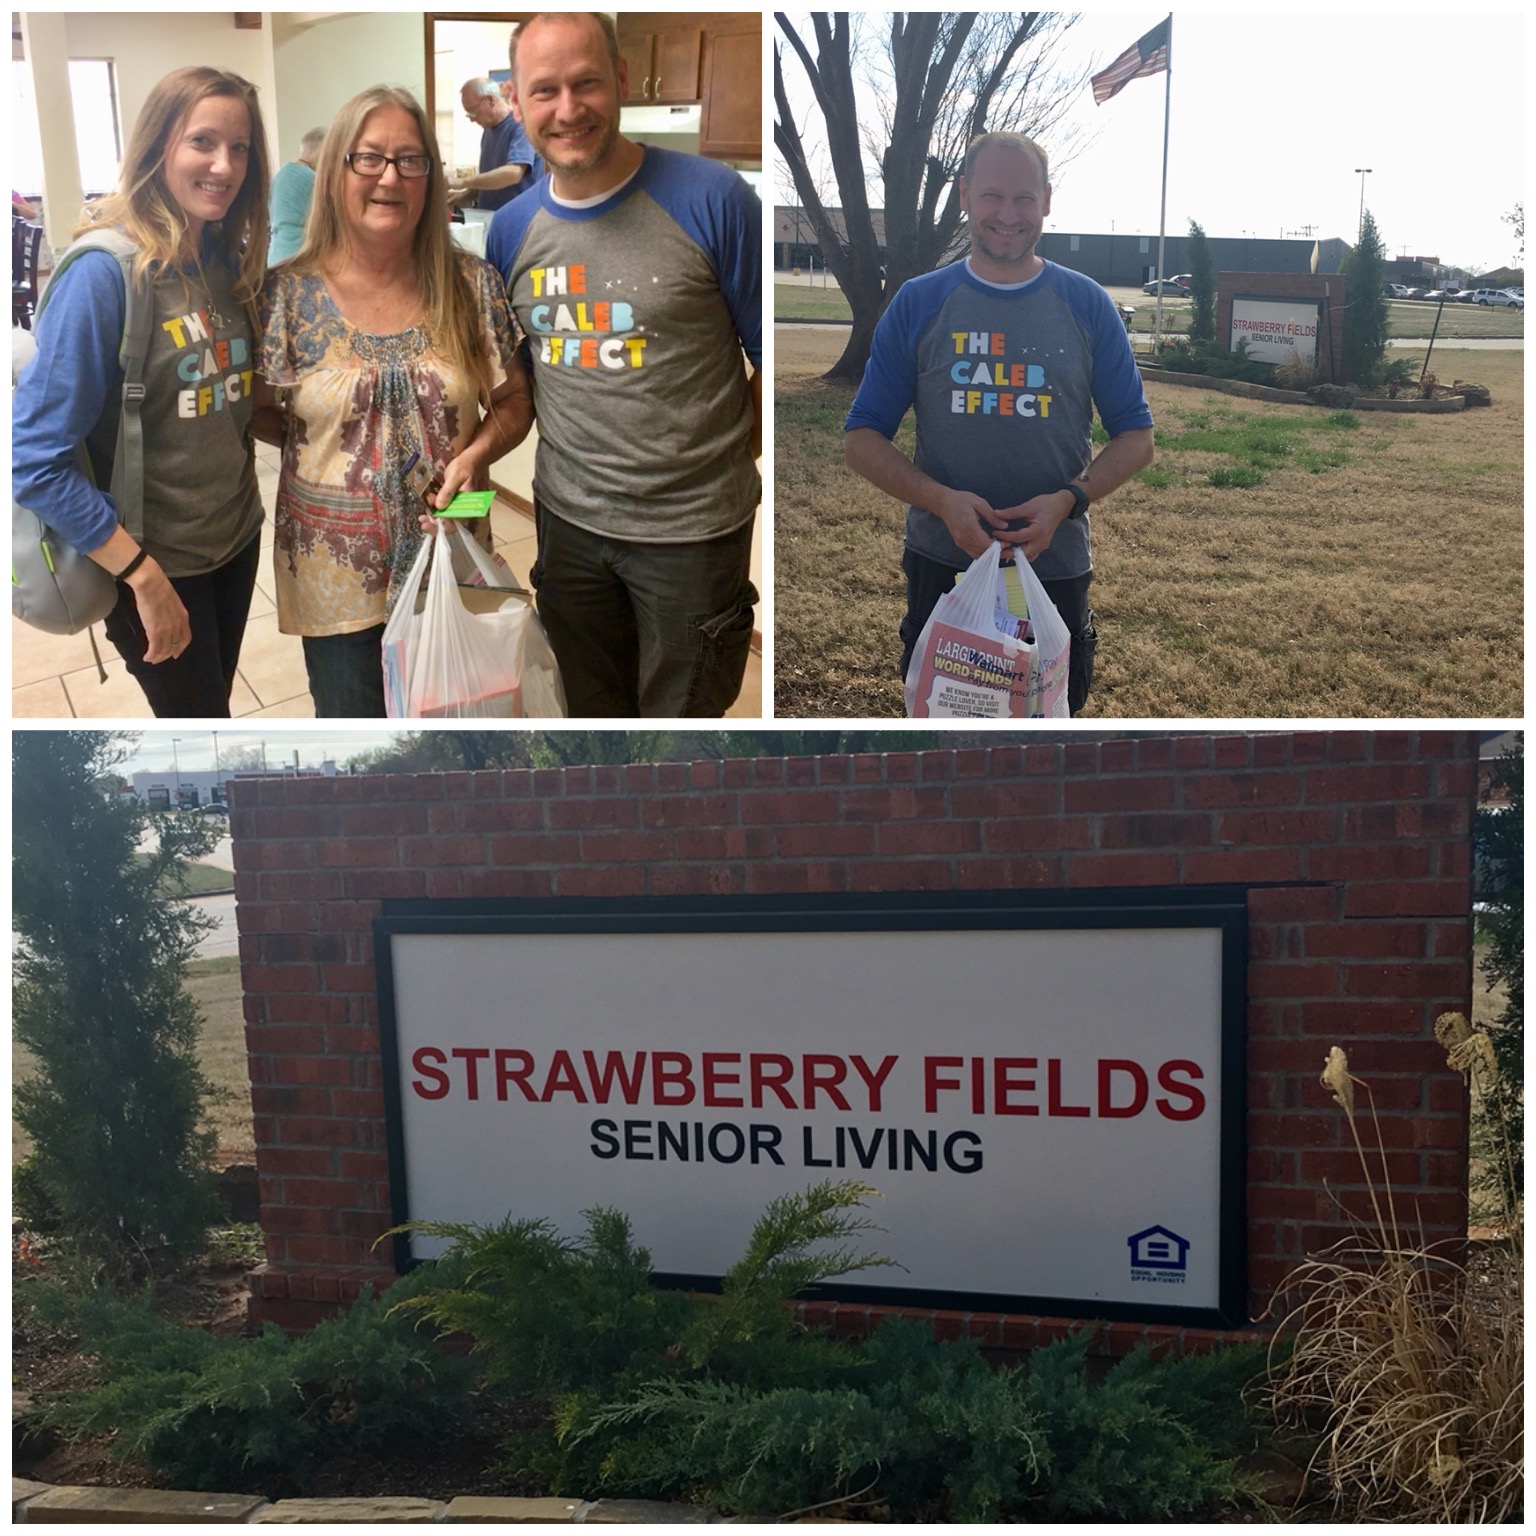 """Stop #17! Strawberry Fields Senior Living -As I said in my Facebook Live video, this was not part of the original plan, but is anyone surprised at this point? You had been in so many different cities already that I wanted our last stop to be a senior living center in Mustang, the town closest to where we live. Daddy wracked his brain and the only place he could think of was this place. What?? Also, if people do not believe in signs after ALL of these today, I can't wait until you do something even more grand like you keep doing for Mommy and Daddy. I admit that I am a skeptic and a person who likes proof, so I'm sorry you have to work a little harder for me. However, as I told you, you know what I need and you keep making my mouth drop open when I'm not sure I should trust my own eyes. Also, the lady inside already knew all about you, Caleb Lennon and said she got emotional just seeing us walking in with our shirts. The goodies we left here are going to be used for this low-income retirement community's bingo prizes.  April 2018-Nice On The 9th Recap:  7 cities (Norman, Moore, OKC, The Village, Edmond, Yukon, and Mustang) + 12 hours of being """"Nice On The 9th"""" =PRICELESS day of spreading The Caleb Effect with our community.  I love you, Caleb. Now and always.  — with  Ken Toey at  Strawberry Fields Senior Living & Retirement Community ."""